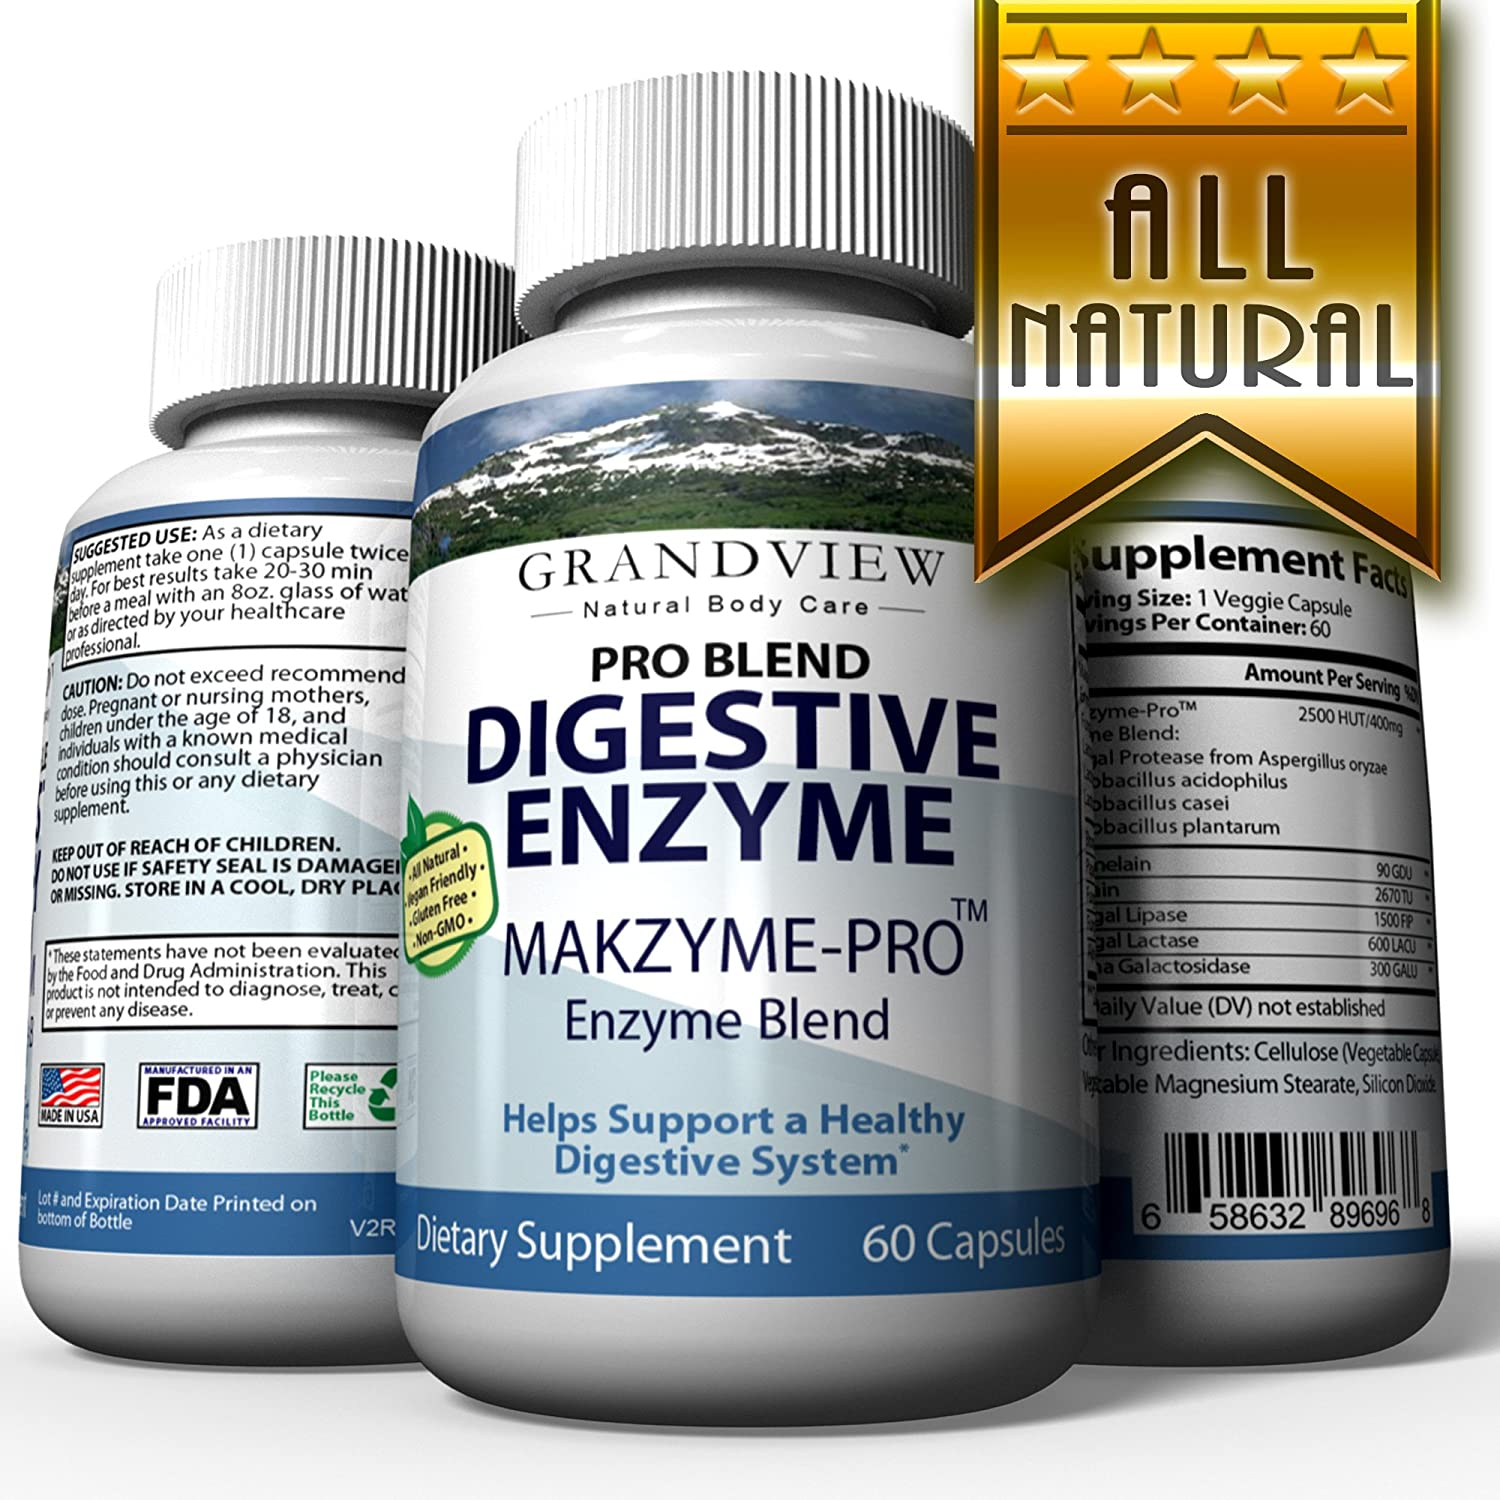 Amazon.com: Digestive Enzyme Pro Blend - All Natural Stomach Support for Better Digestion and Nutrient Absorption, Fights Bloating, Gas and Constipation for ...